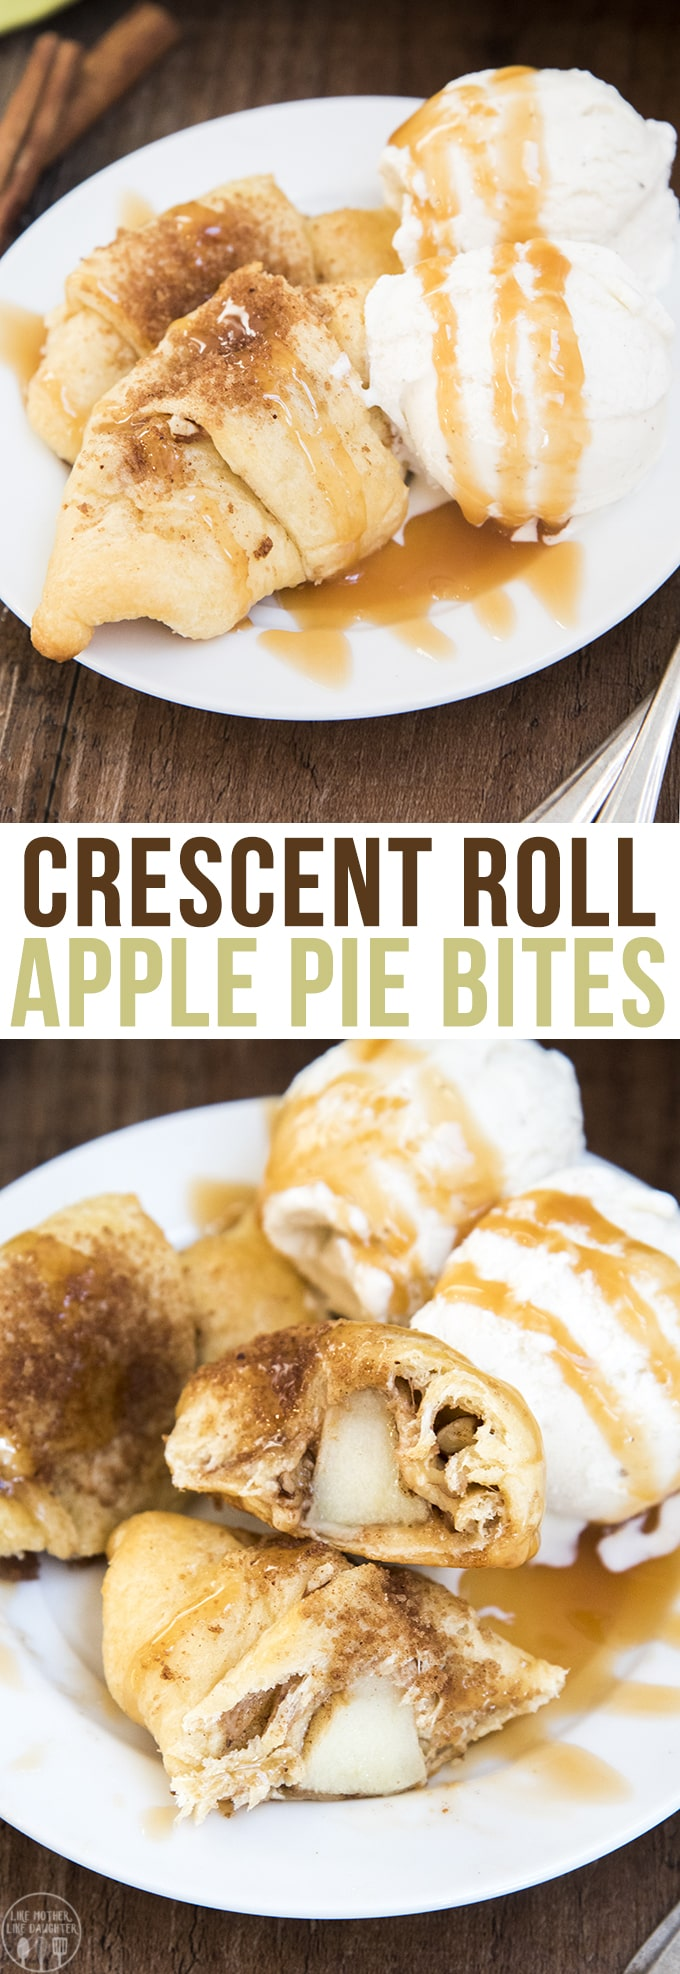 Apple Pie Bites - These crescent roll apple pie bites are so much easier than apple pie with the same great flavors.These tasty apple pie bites are made with Pillsbury Crescent Rolls and ready in less than 30 minutes!